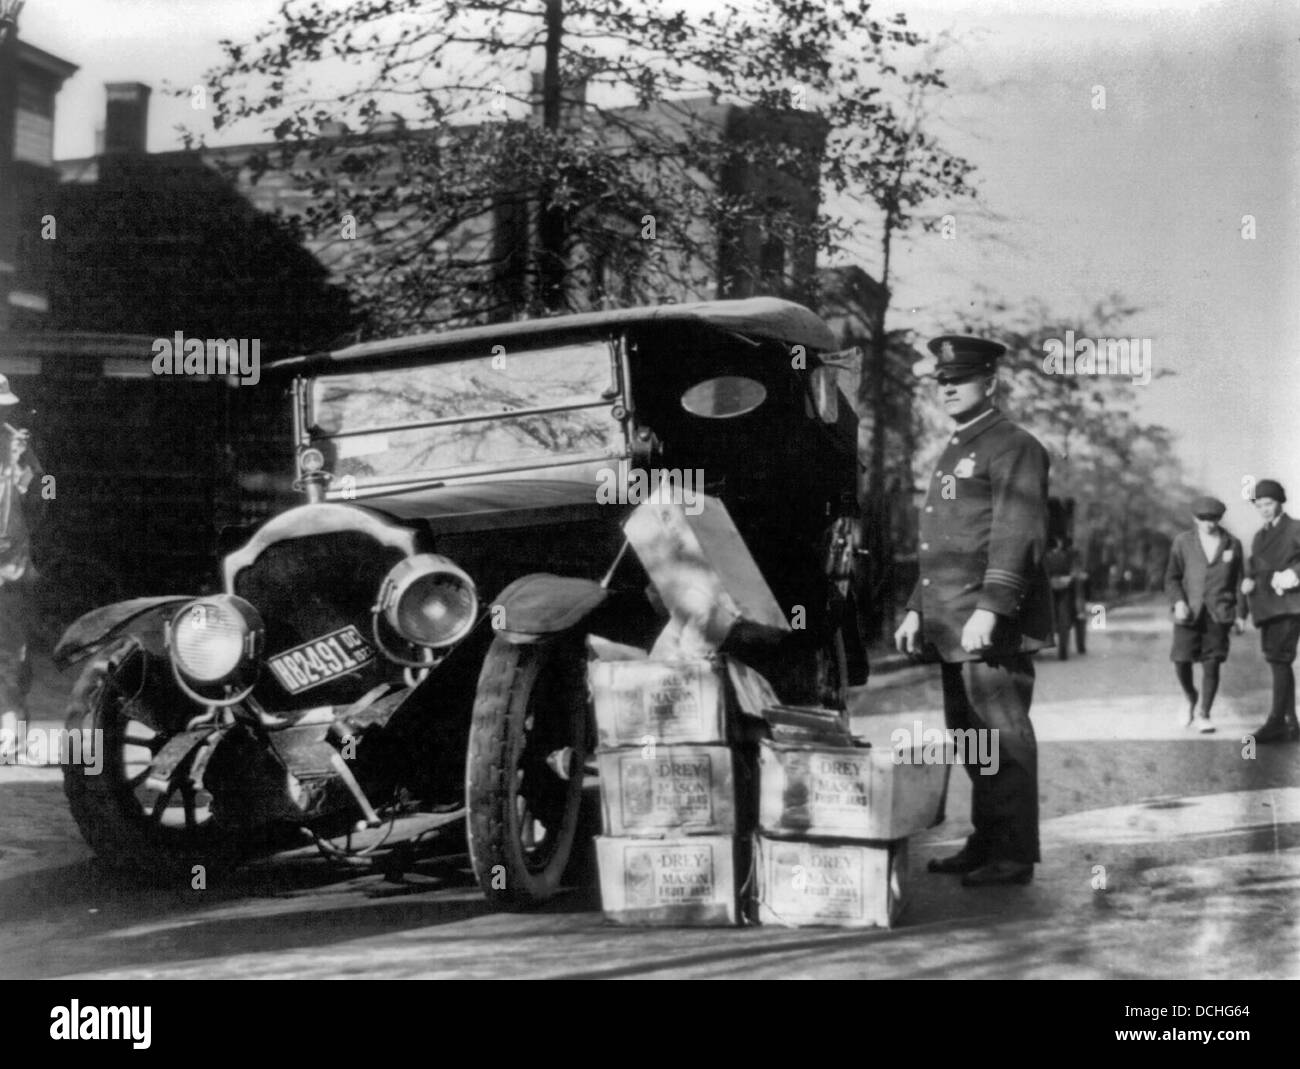 Policeman standing alongside wrecked car and cases of moonshine, during USA Prohibition circa 1922 - Stock Image